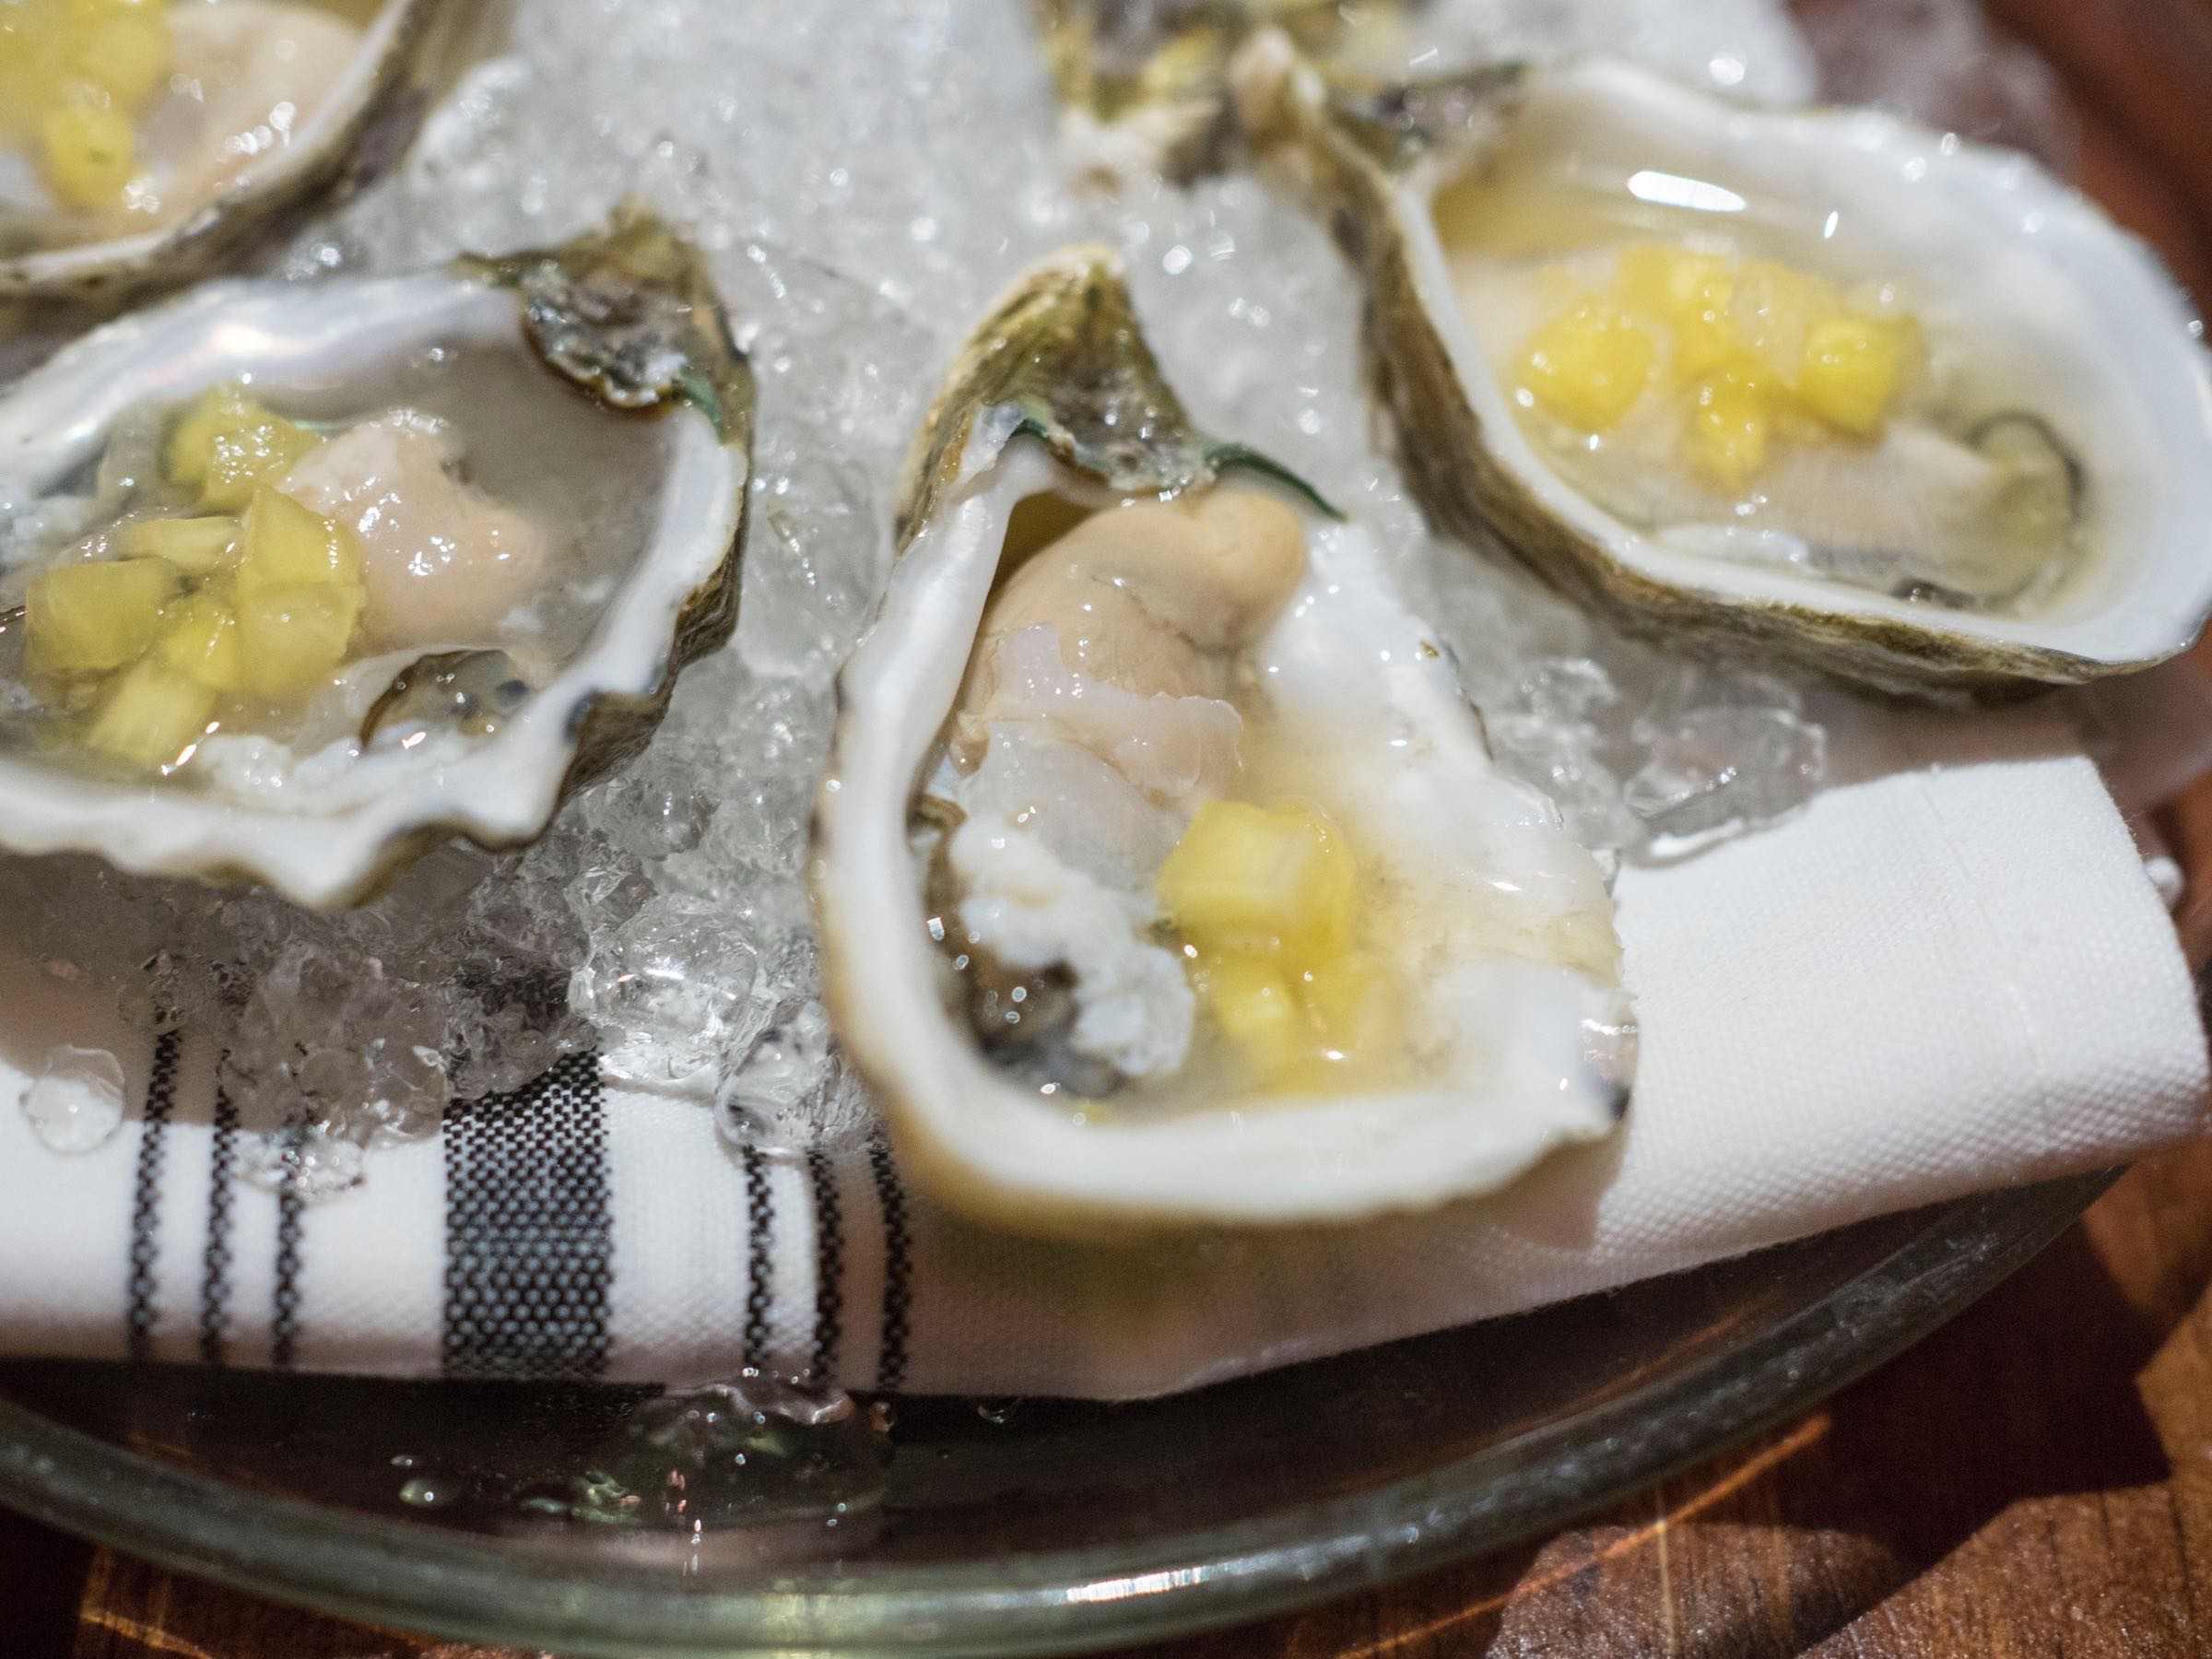 Shigoku Oysters with Pickled Pineapple